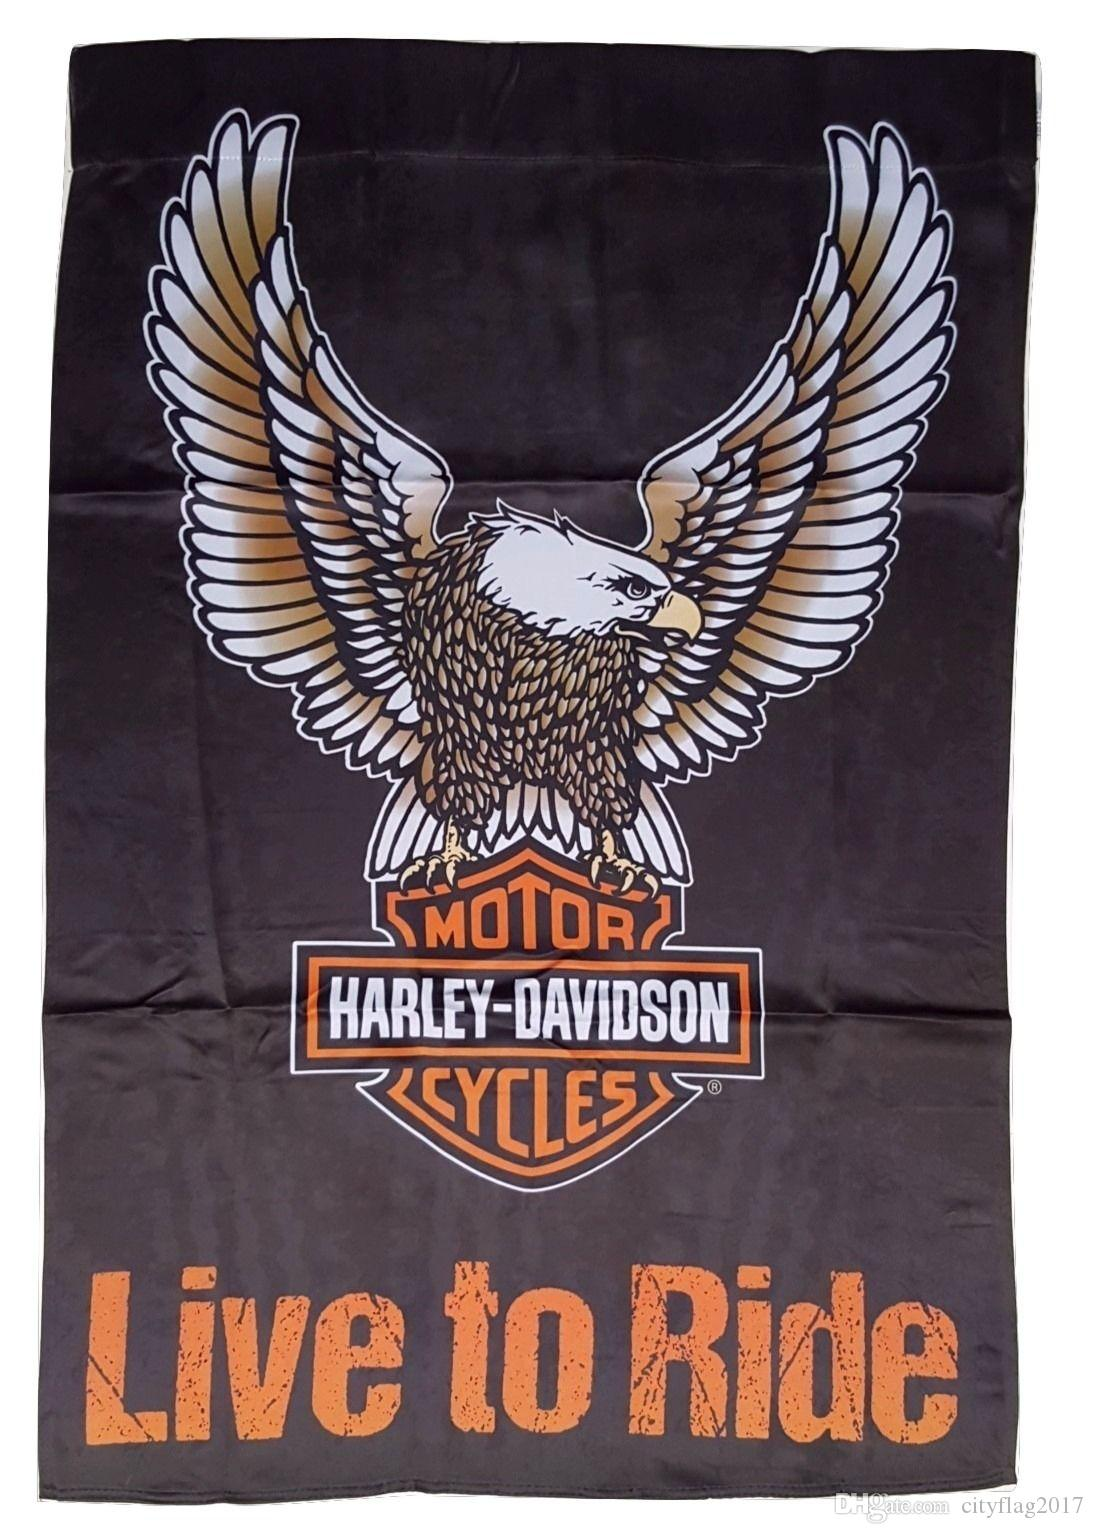 harley davidsons customer centered supply chain When bill harley developed one, he  most of them harley-davidsons by this time harley-davidson was the  harley davidson's customer-centered supply chain.